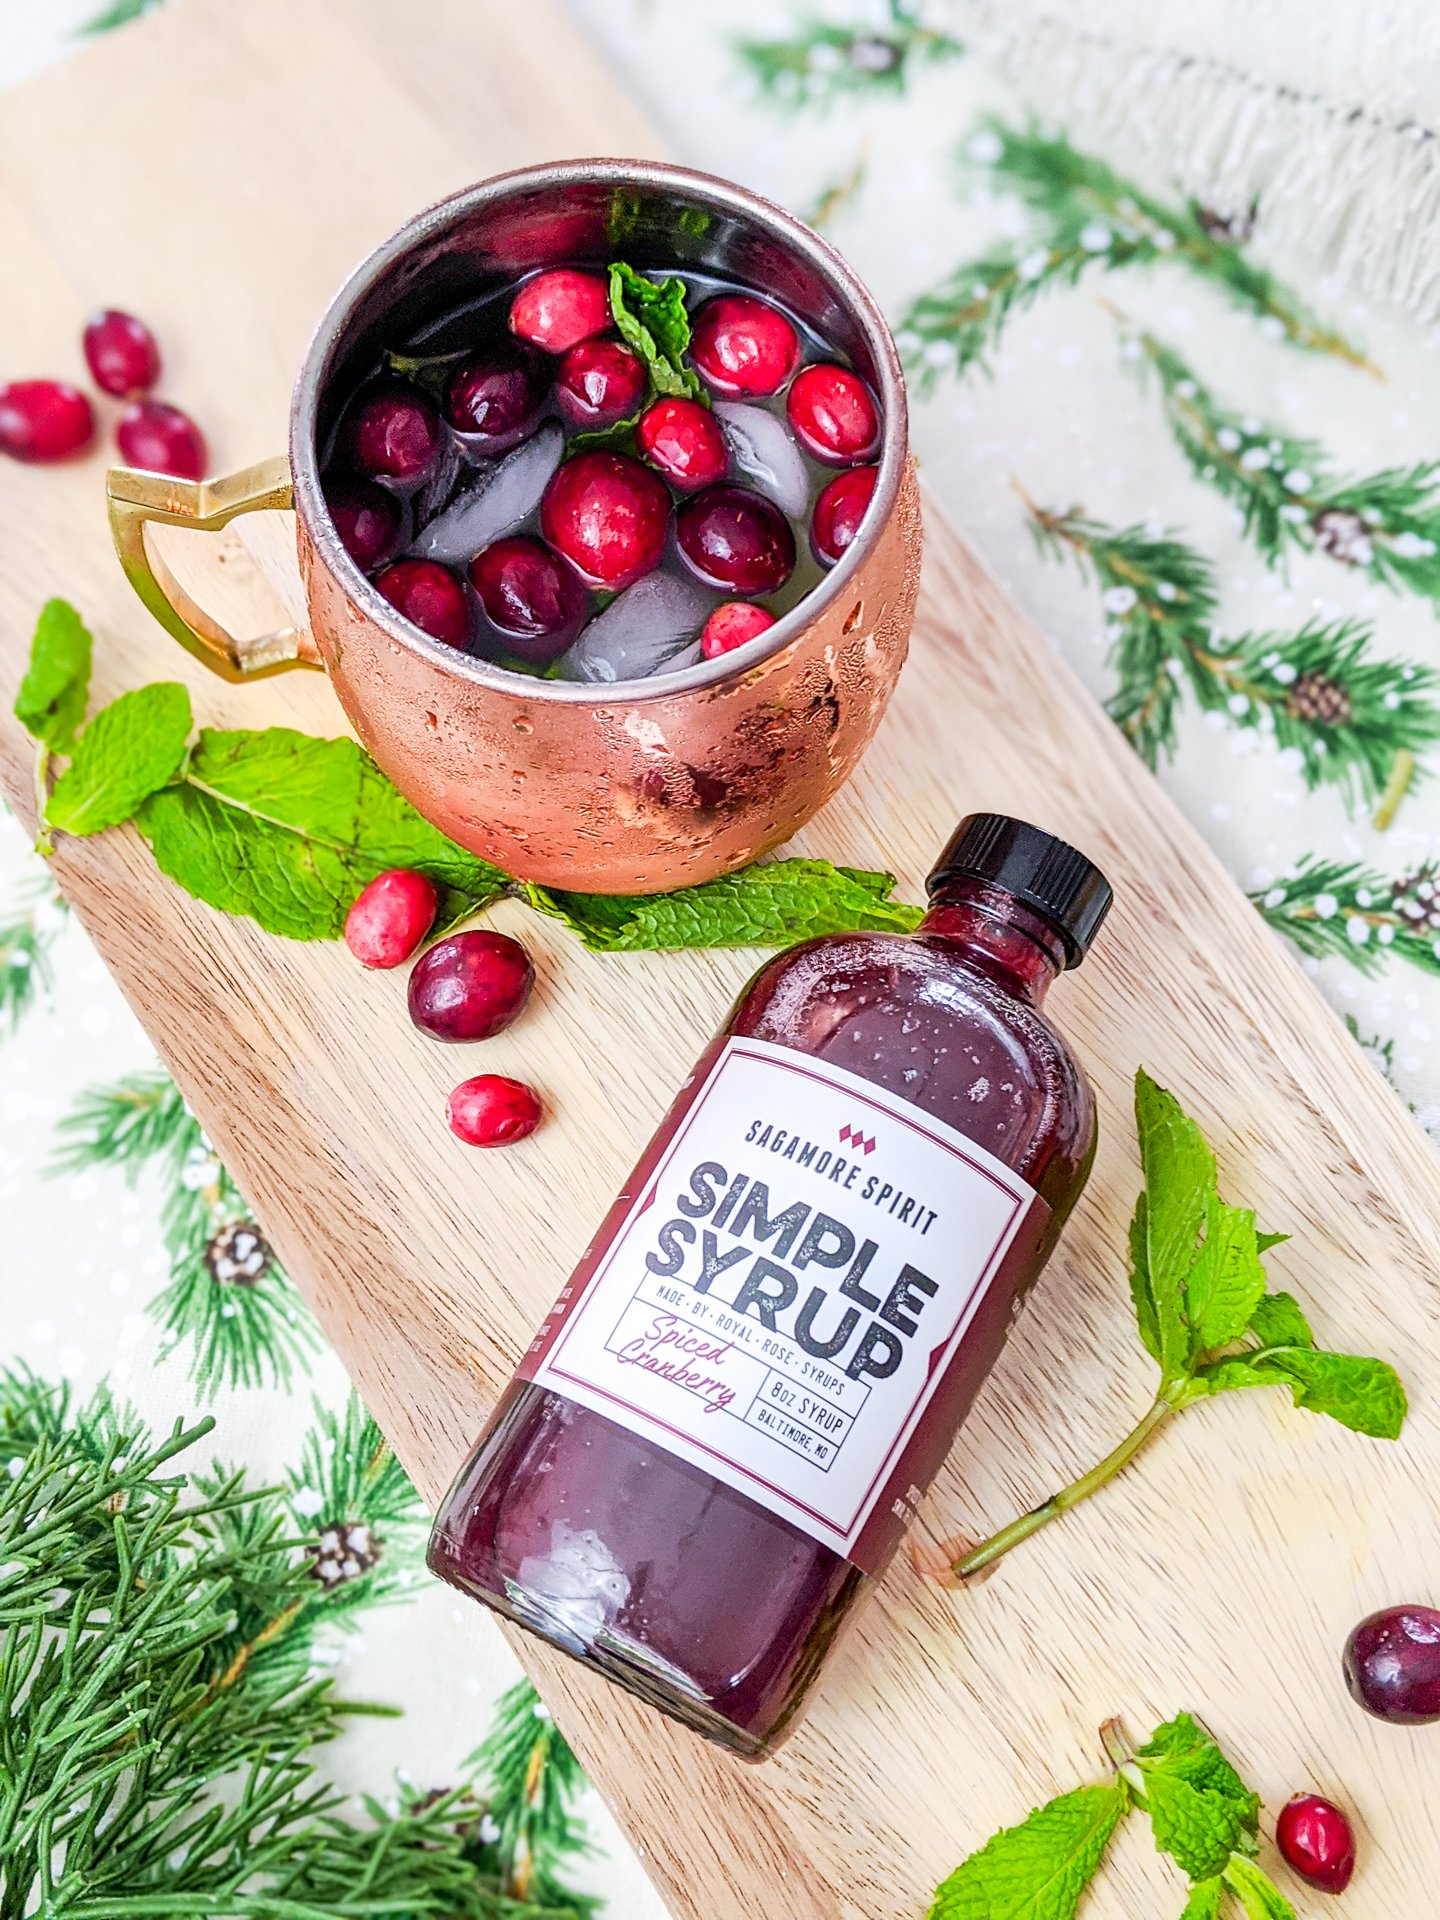 Sagamore Spirit cranberry simple syrup